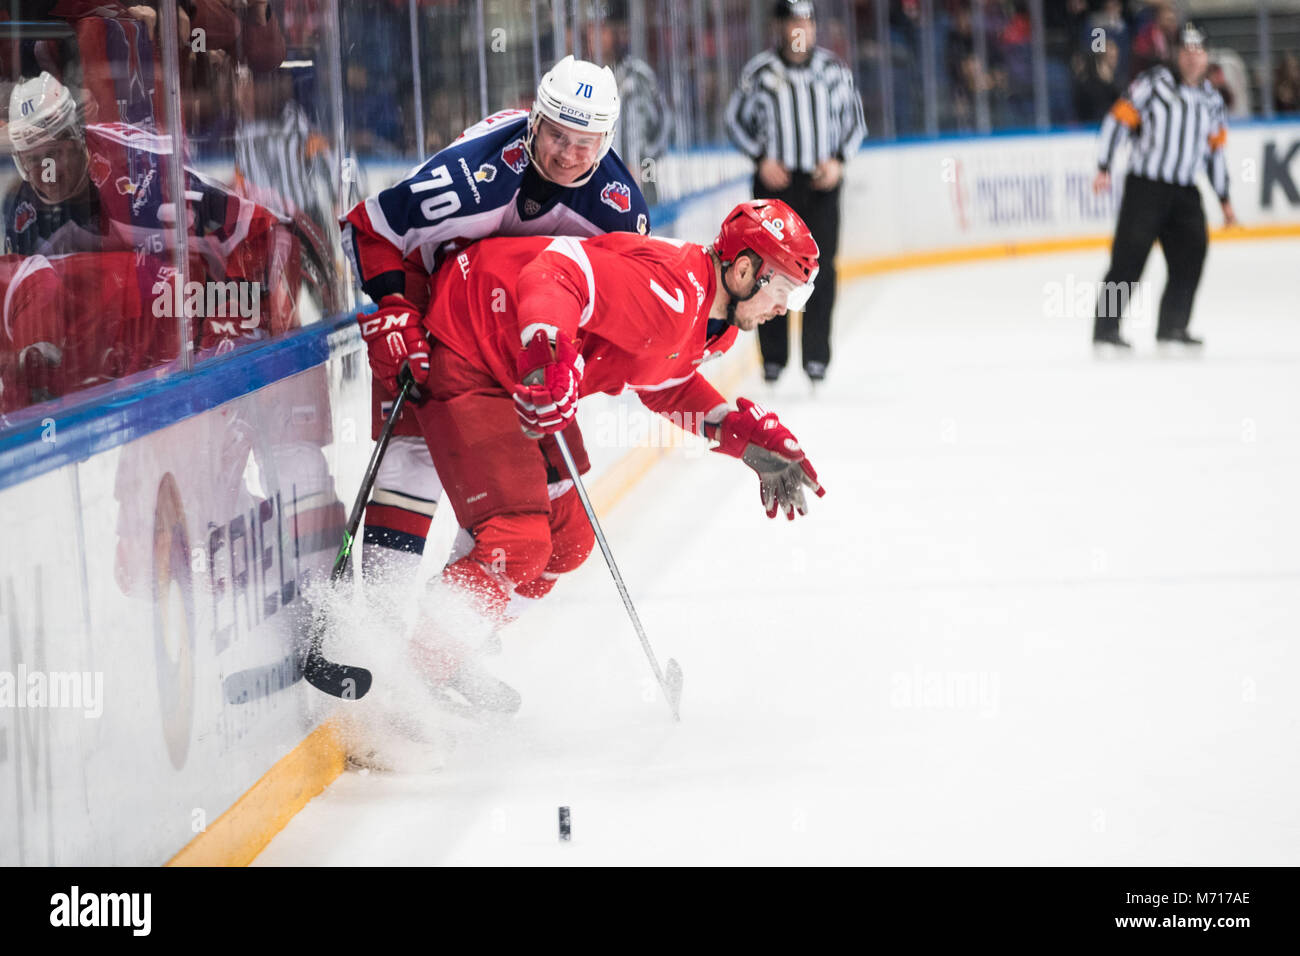 Moscow, Russia. 7th Mar, 2018. Dimitry Kalinin (R) of Spartak stops Sergei Shumakov of CSKA during a KHL play-off - Stock Image